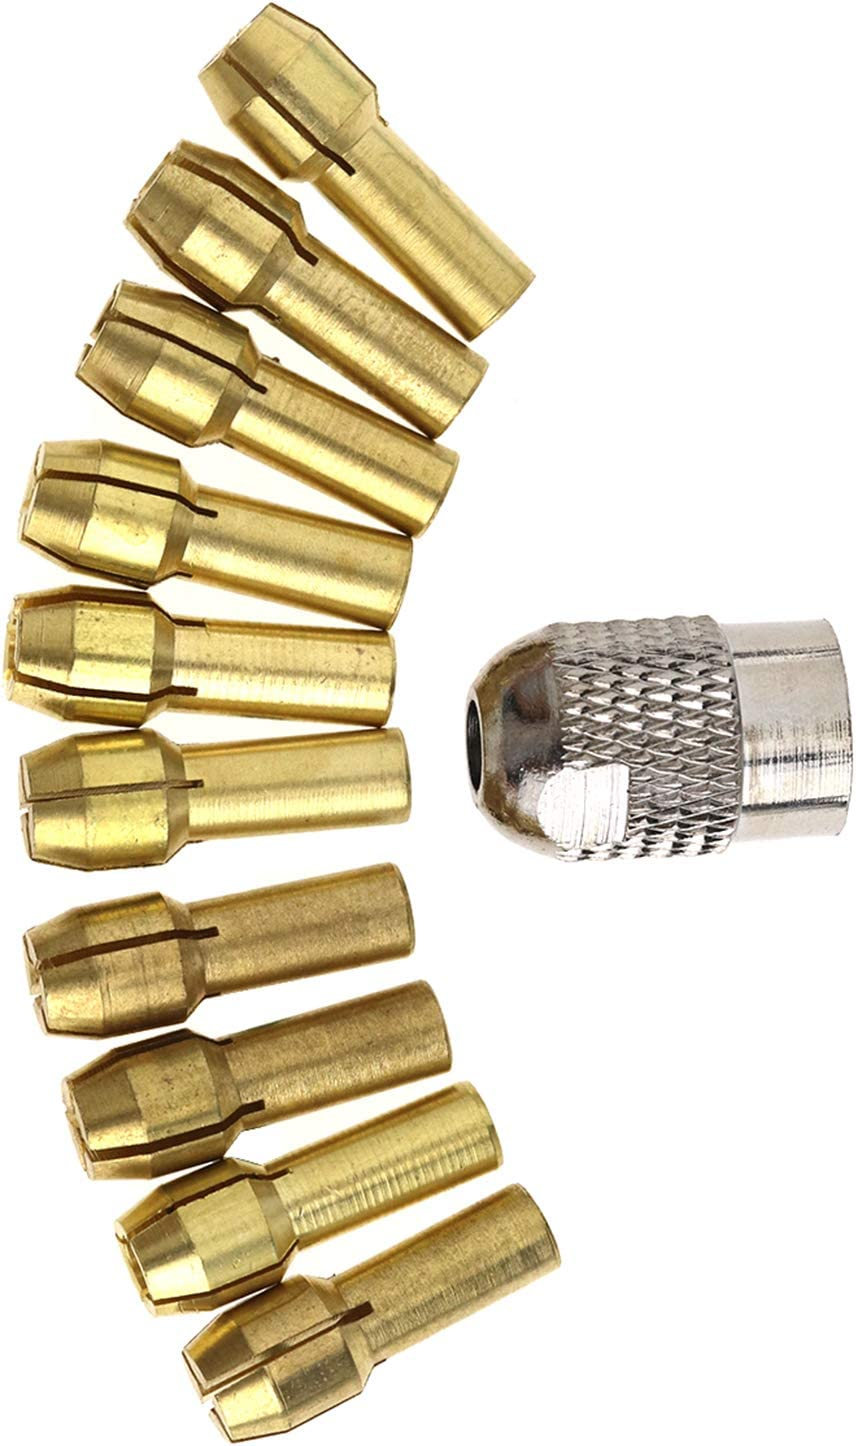 Create Idea Pack of 10 0.5mm-3.2mm Brass Drill Chuck Collet Bits 4.3mm Shank For Rotary Tool Assorted